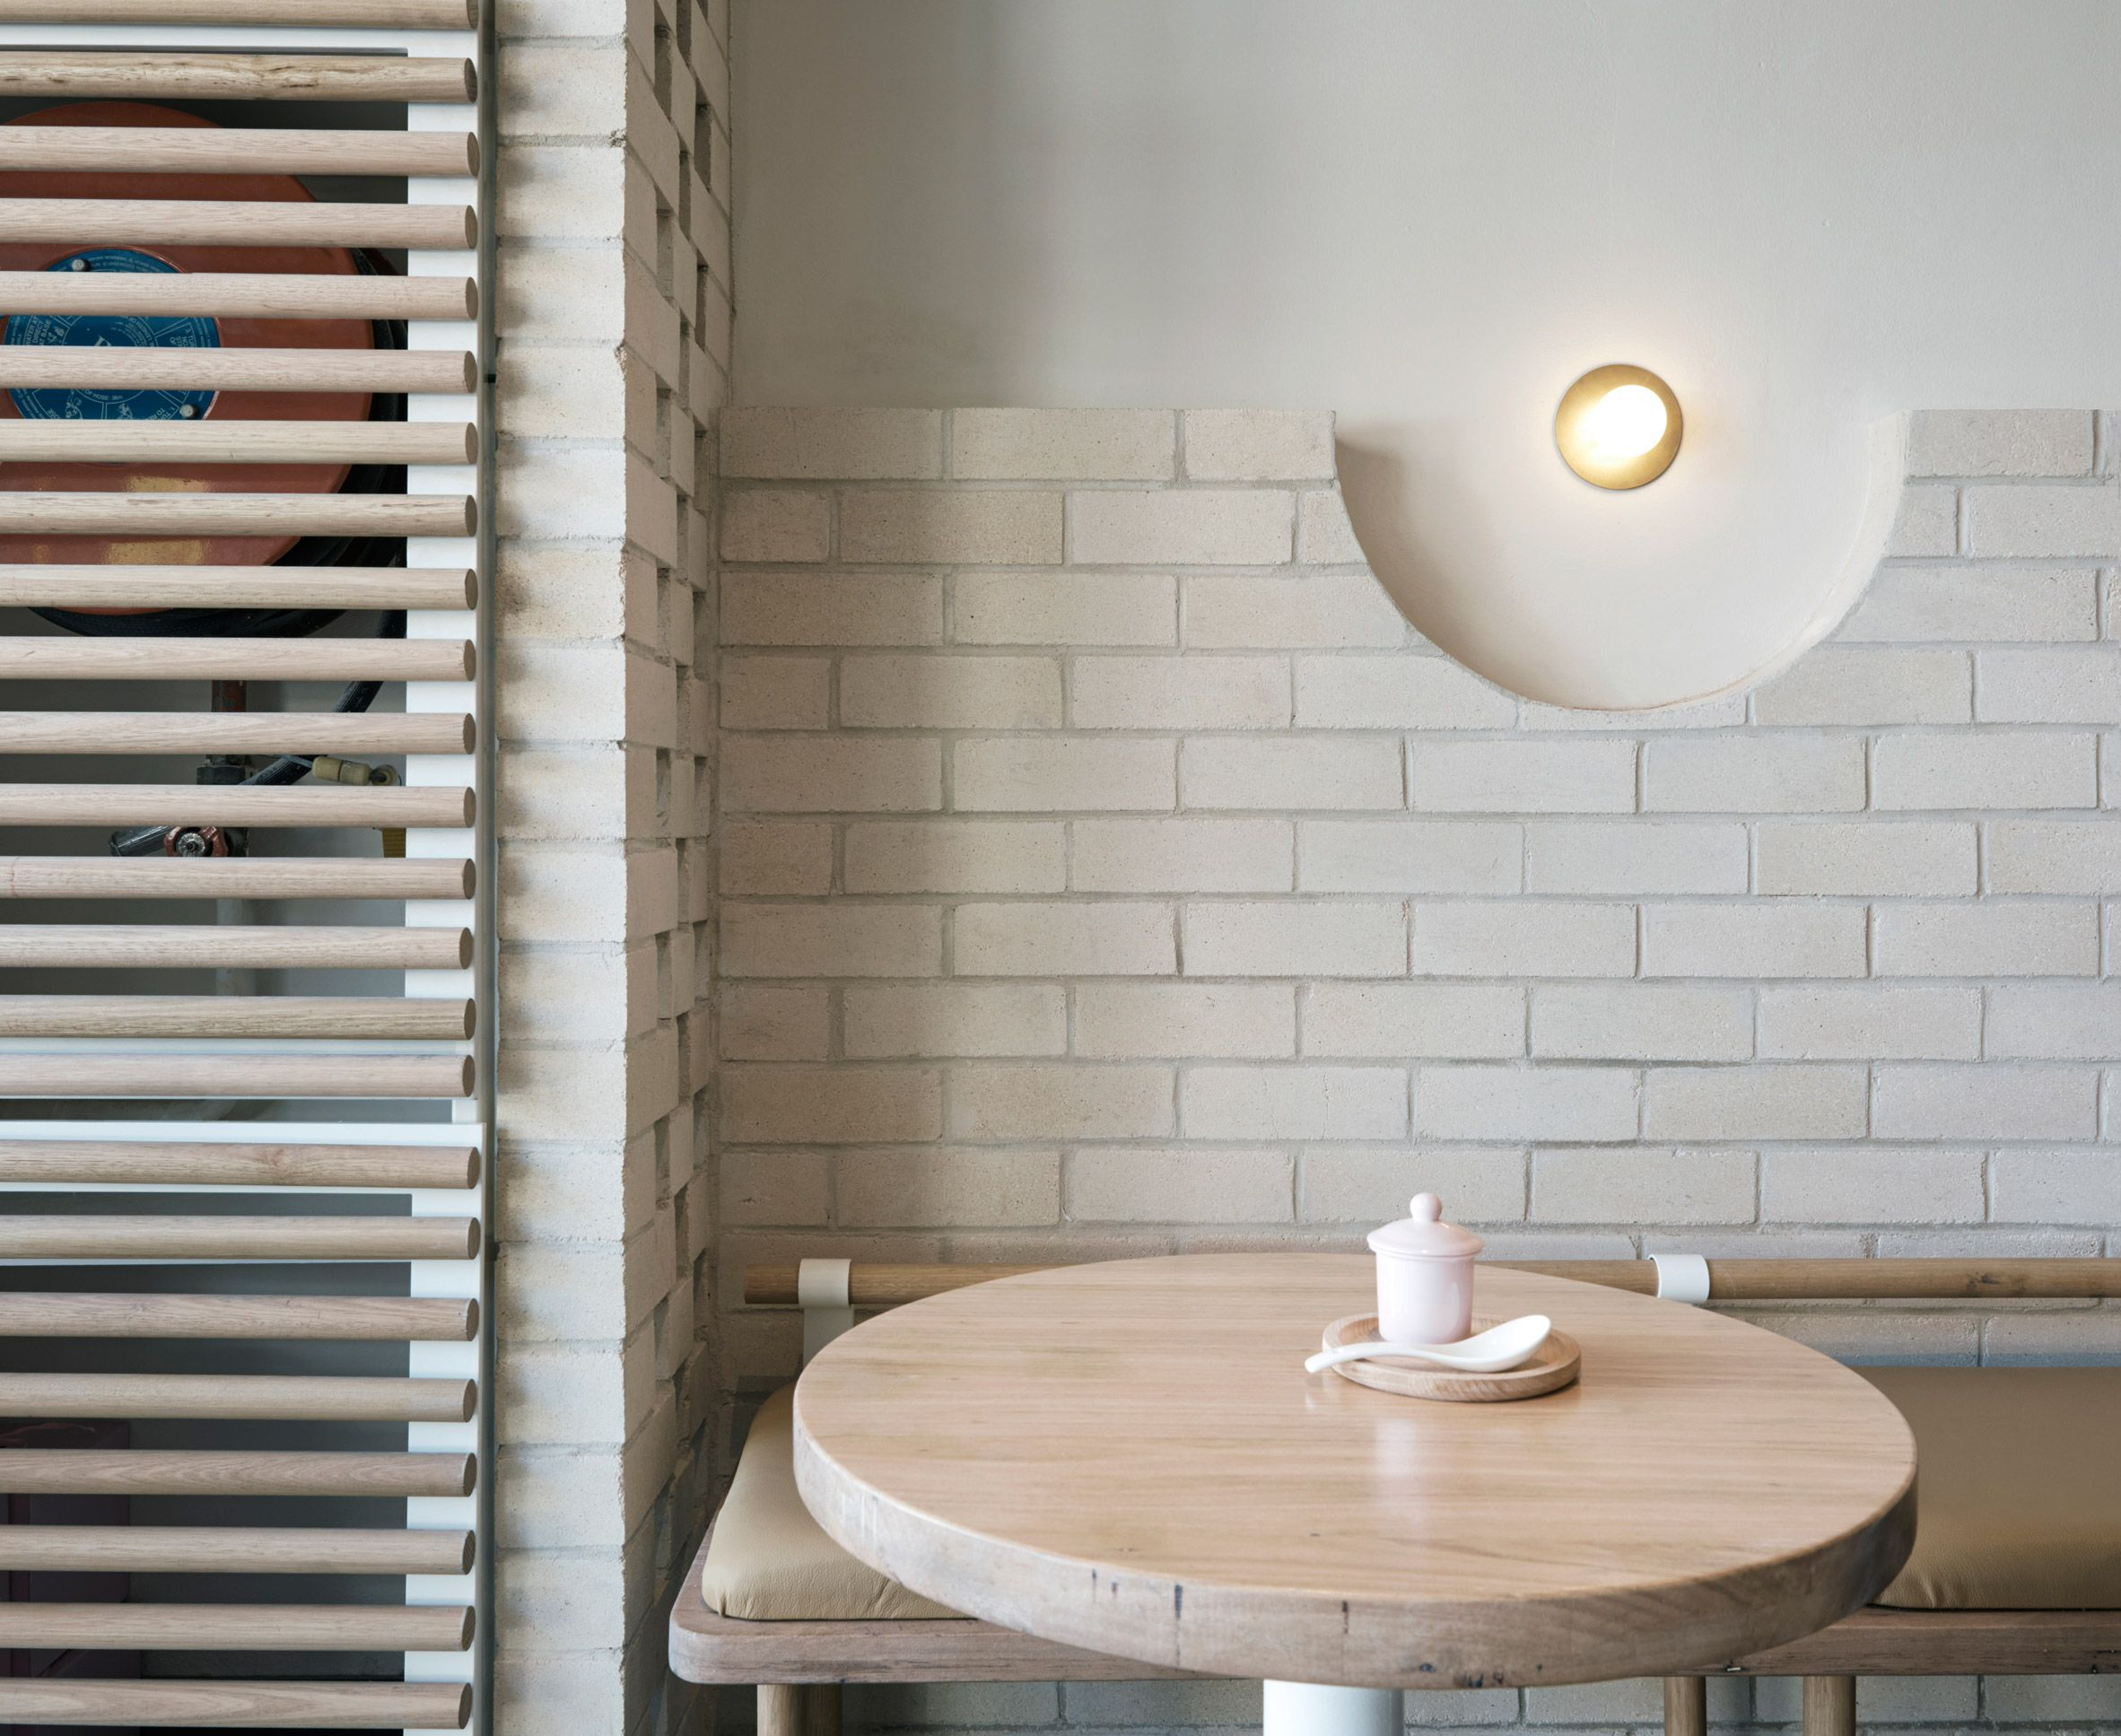 Light Brick Instead Of Subway Light Bling Leather Accents Small